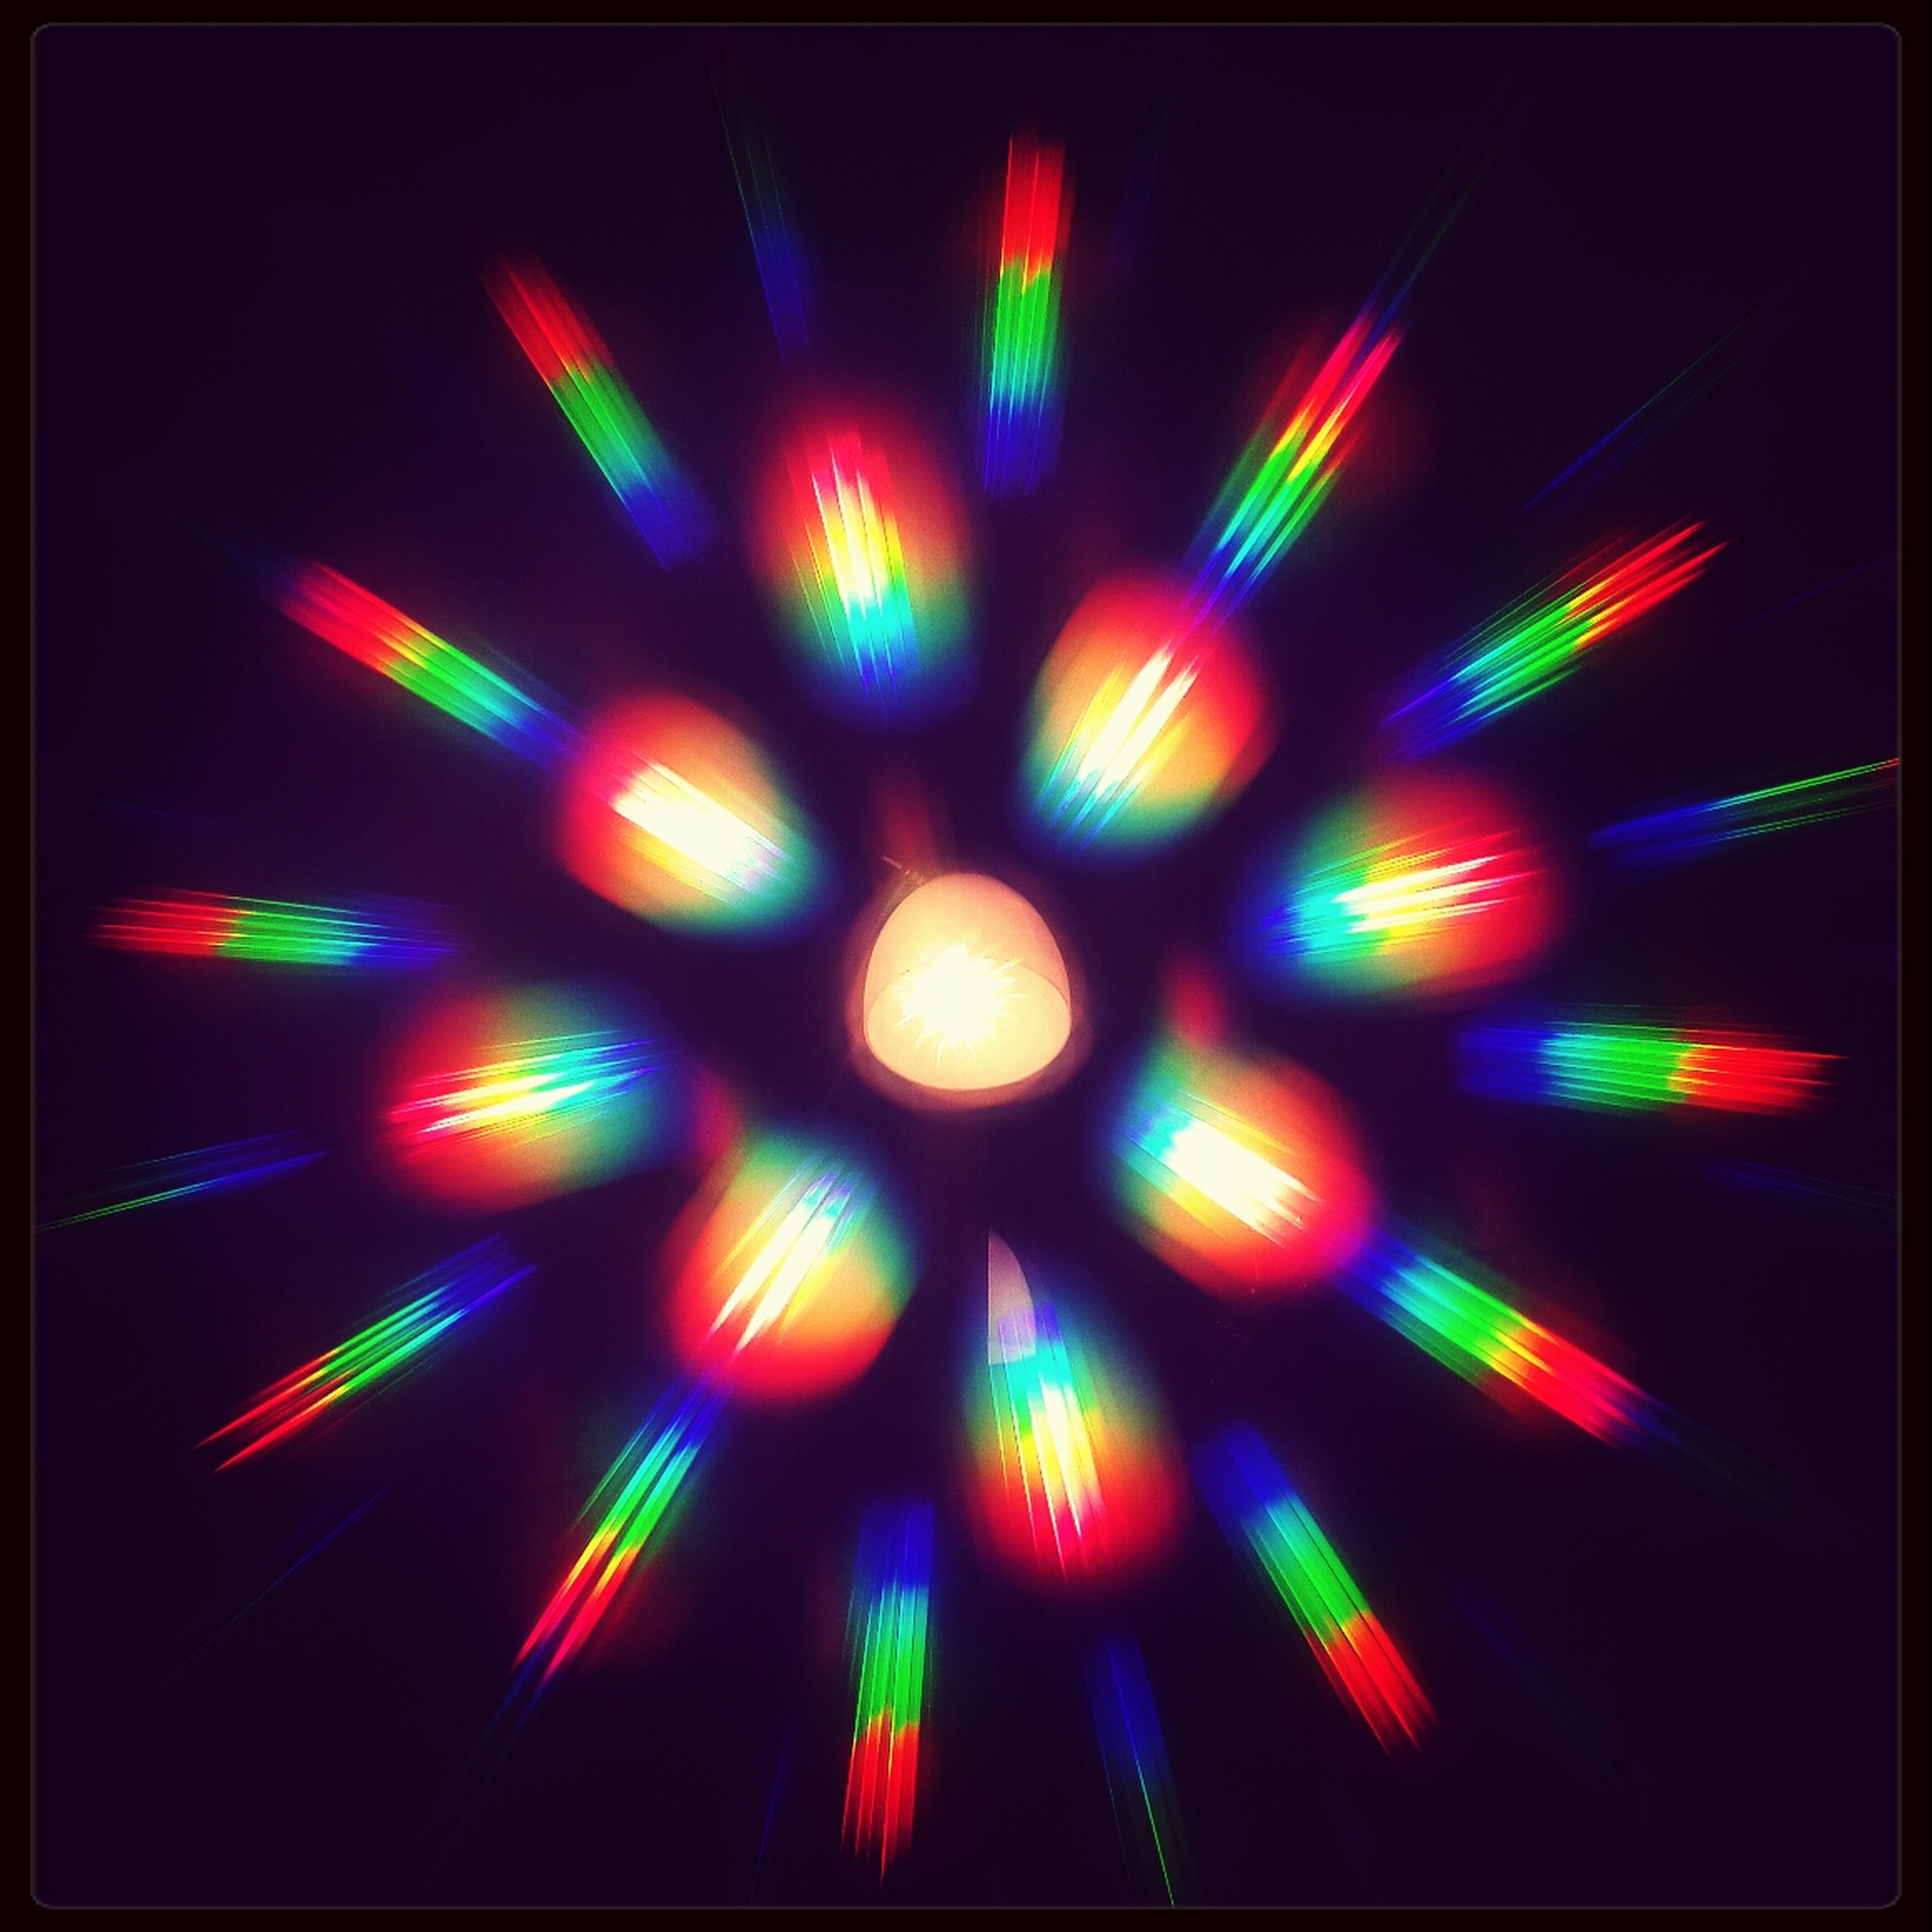 illuminated, multi colored, night, transfer print, lighting equipment, indoors, colorful, glowing, abstract, pattern, light - natural phenomenon, auto post production filter, light, full frame, backgrounds, celebration, decoration, neon, light effect, studio shot